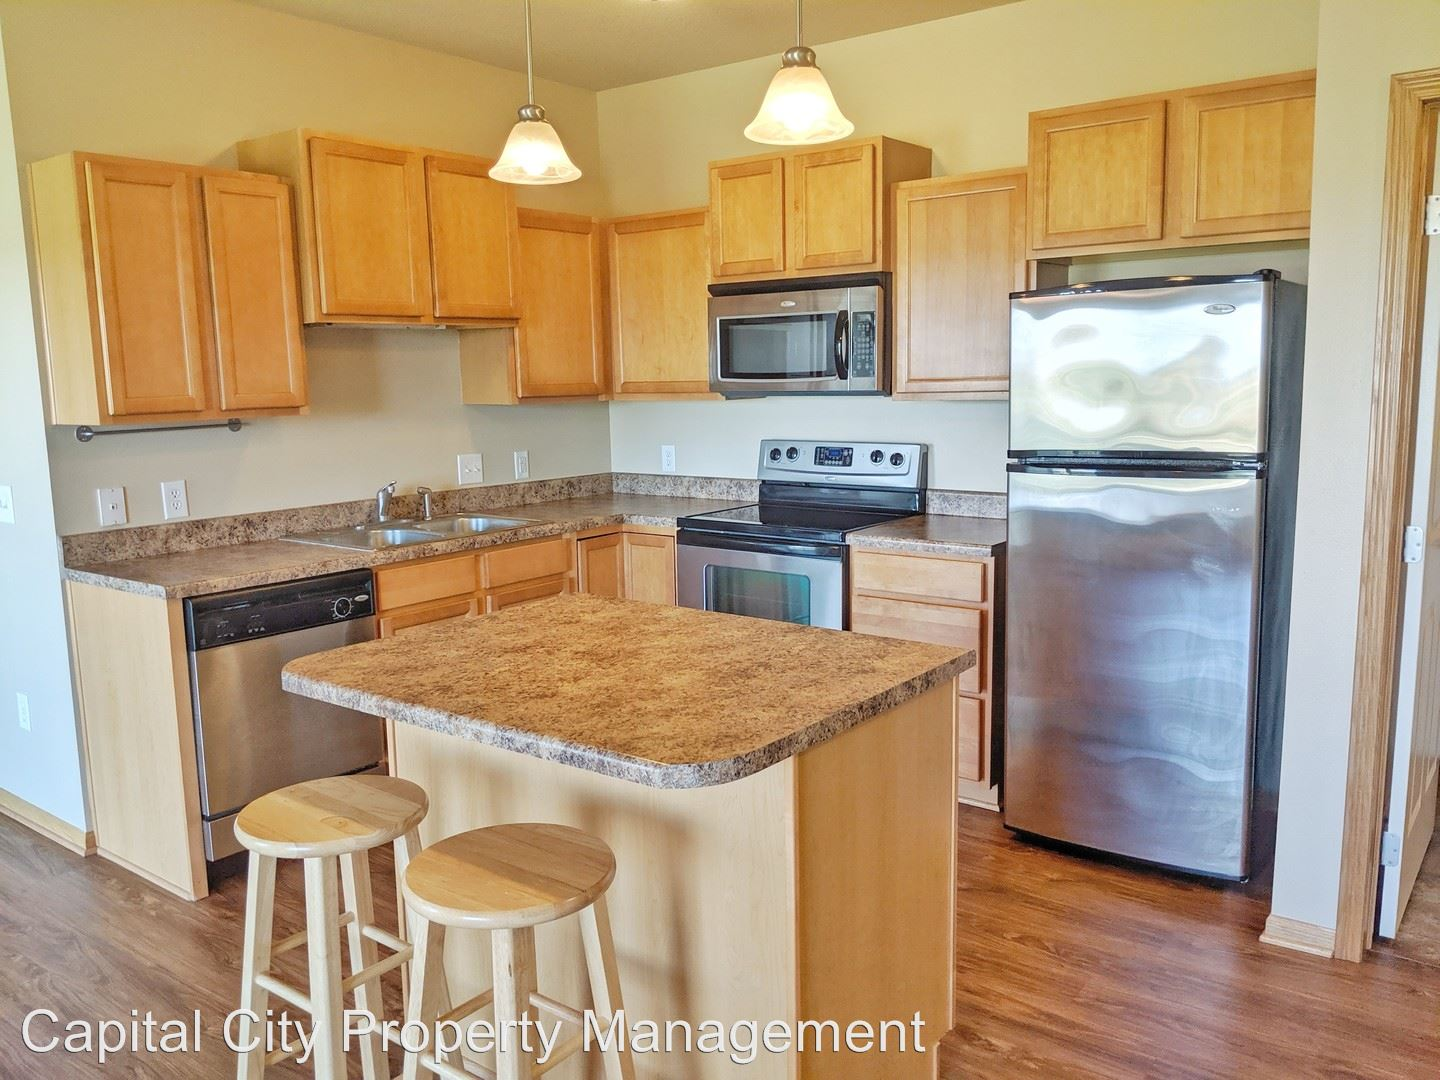 20 Best Apartments For Rent In Ankeny, IA (with pictures)!